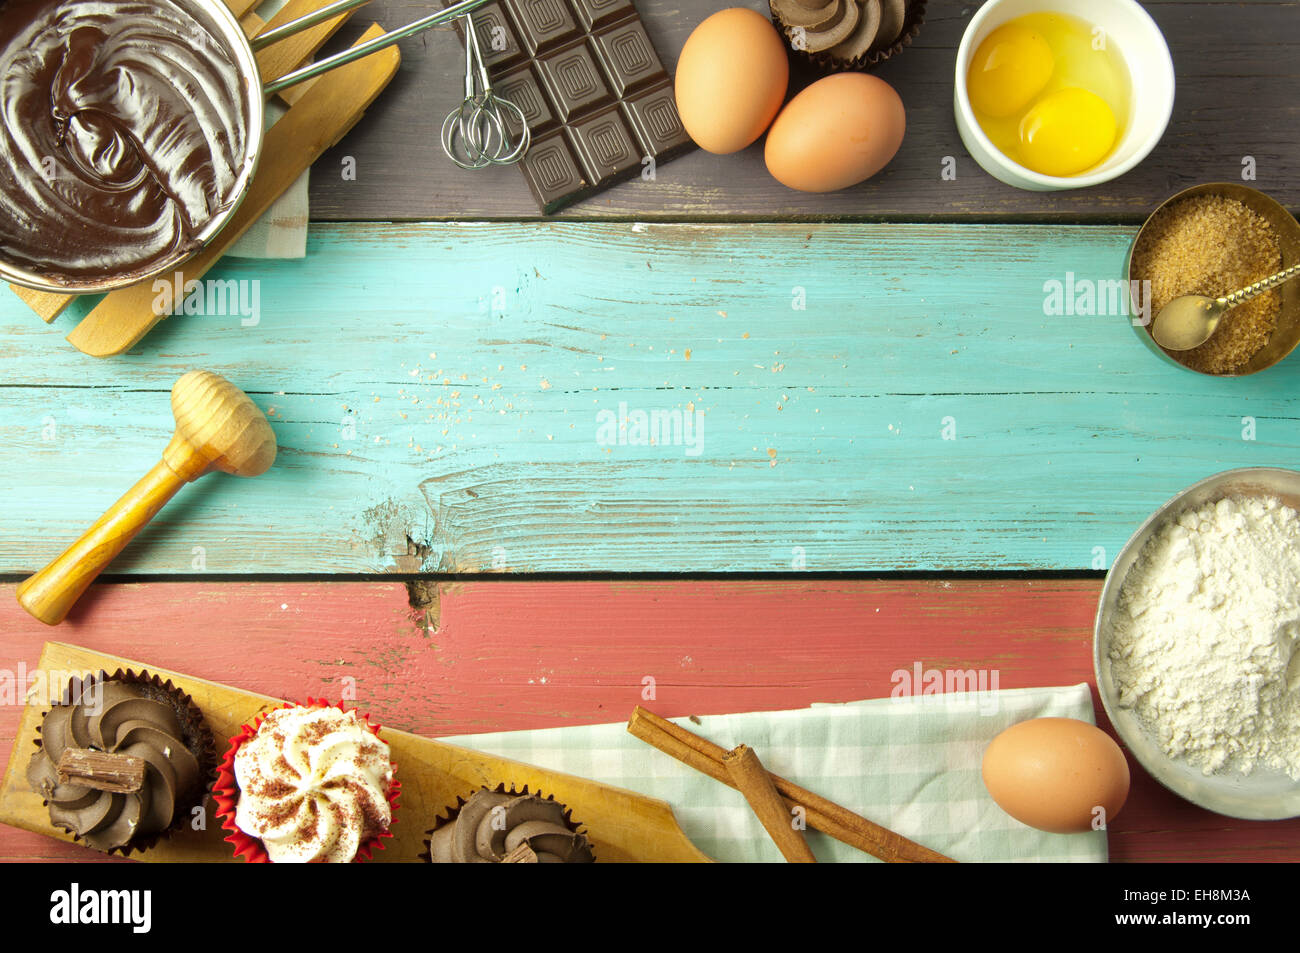 Baking A New Recipe Background Stock Photo Alamy